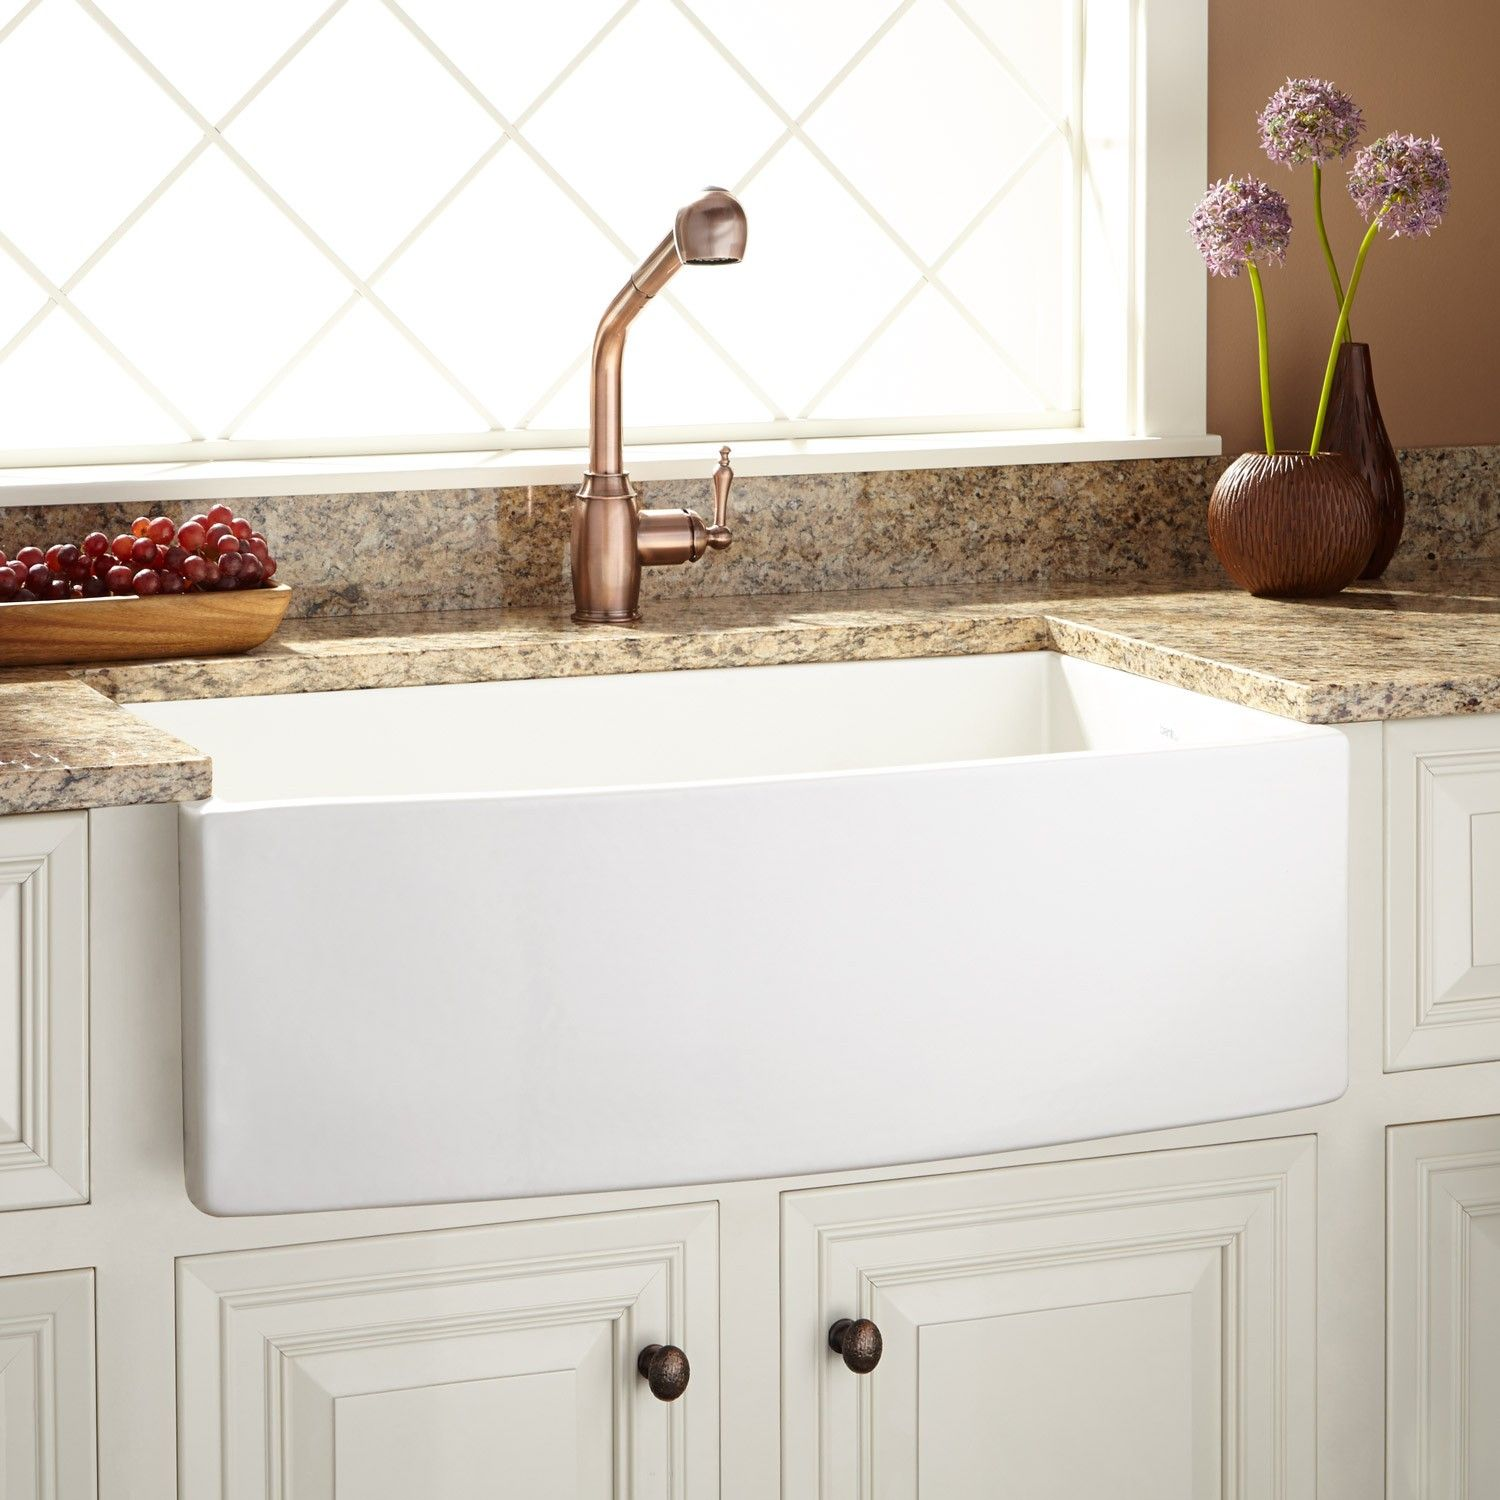 30 Pendleton Fireclay Farmhouse Sink Curved A White